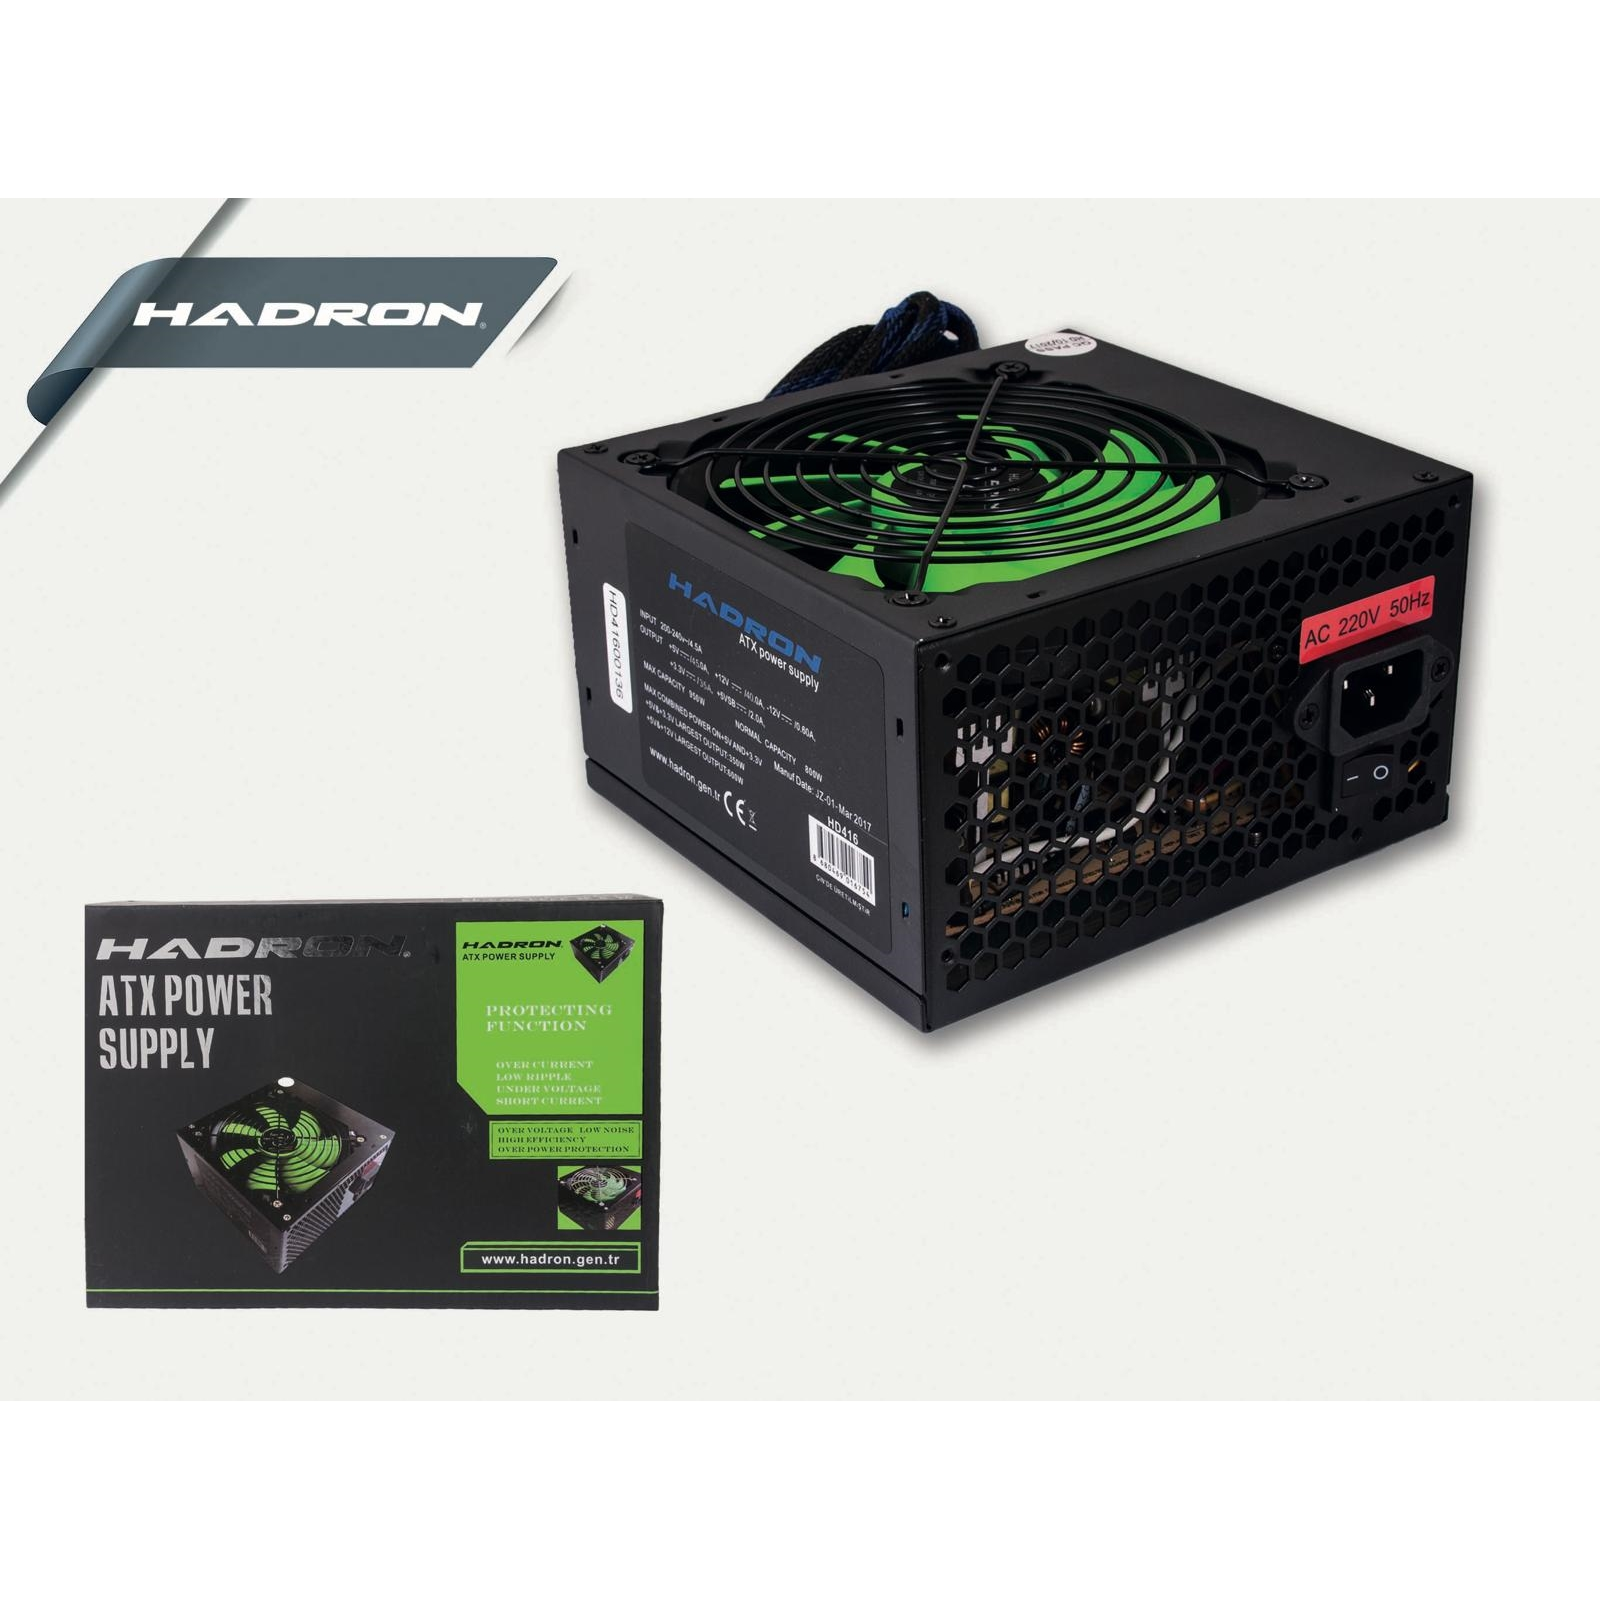 HADRON HD412/10 500W 12cm FANLI POWER SUPPLY KUTULU